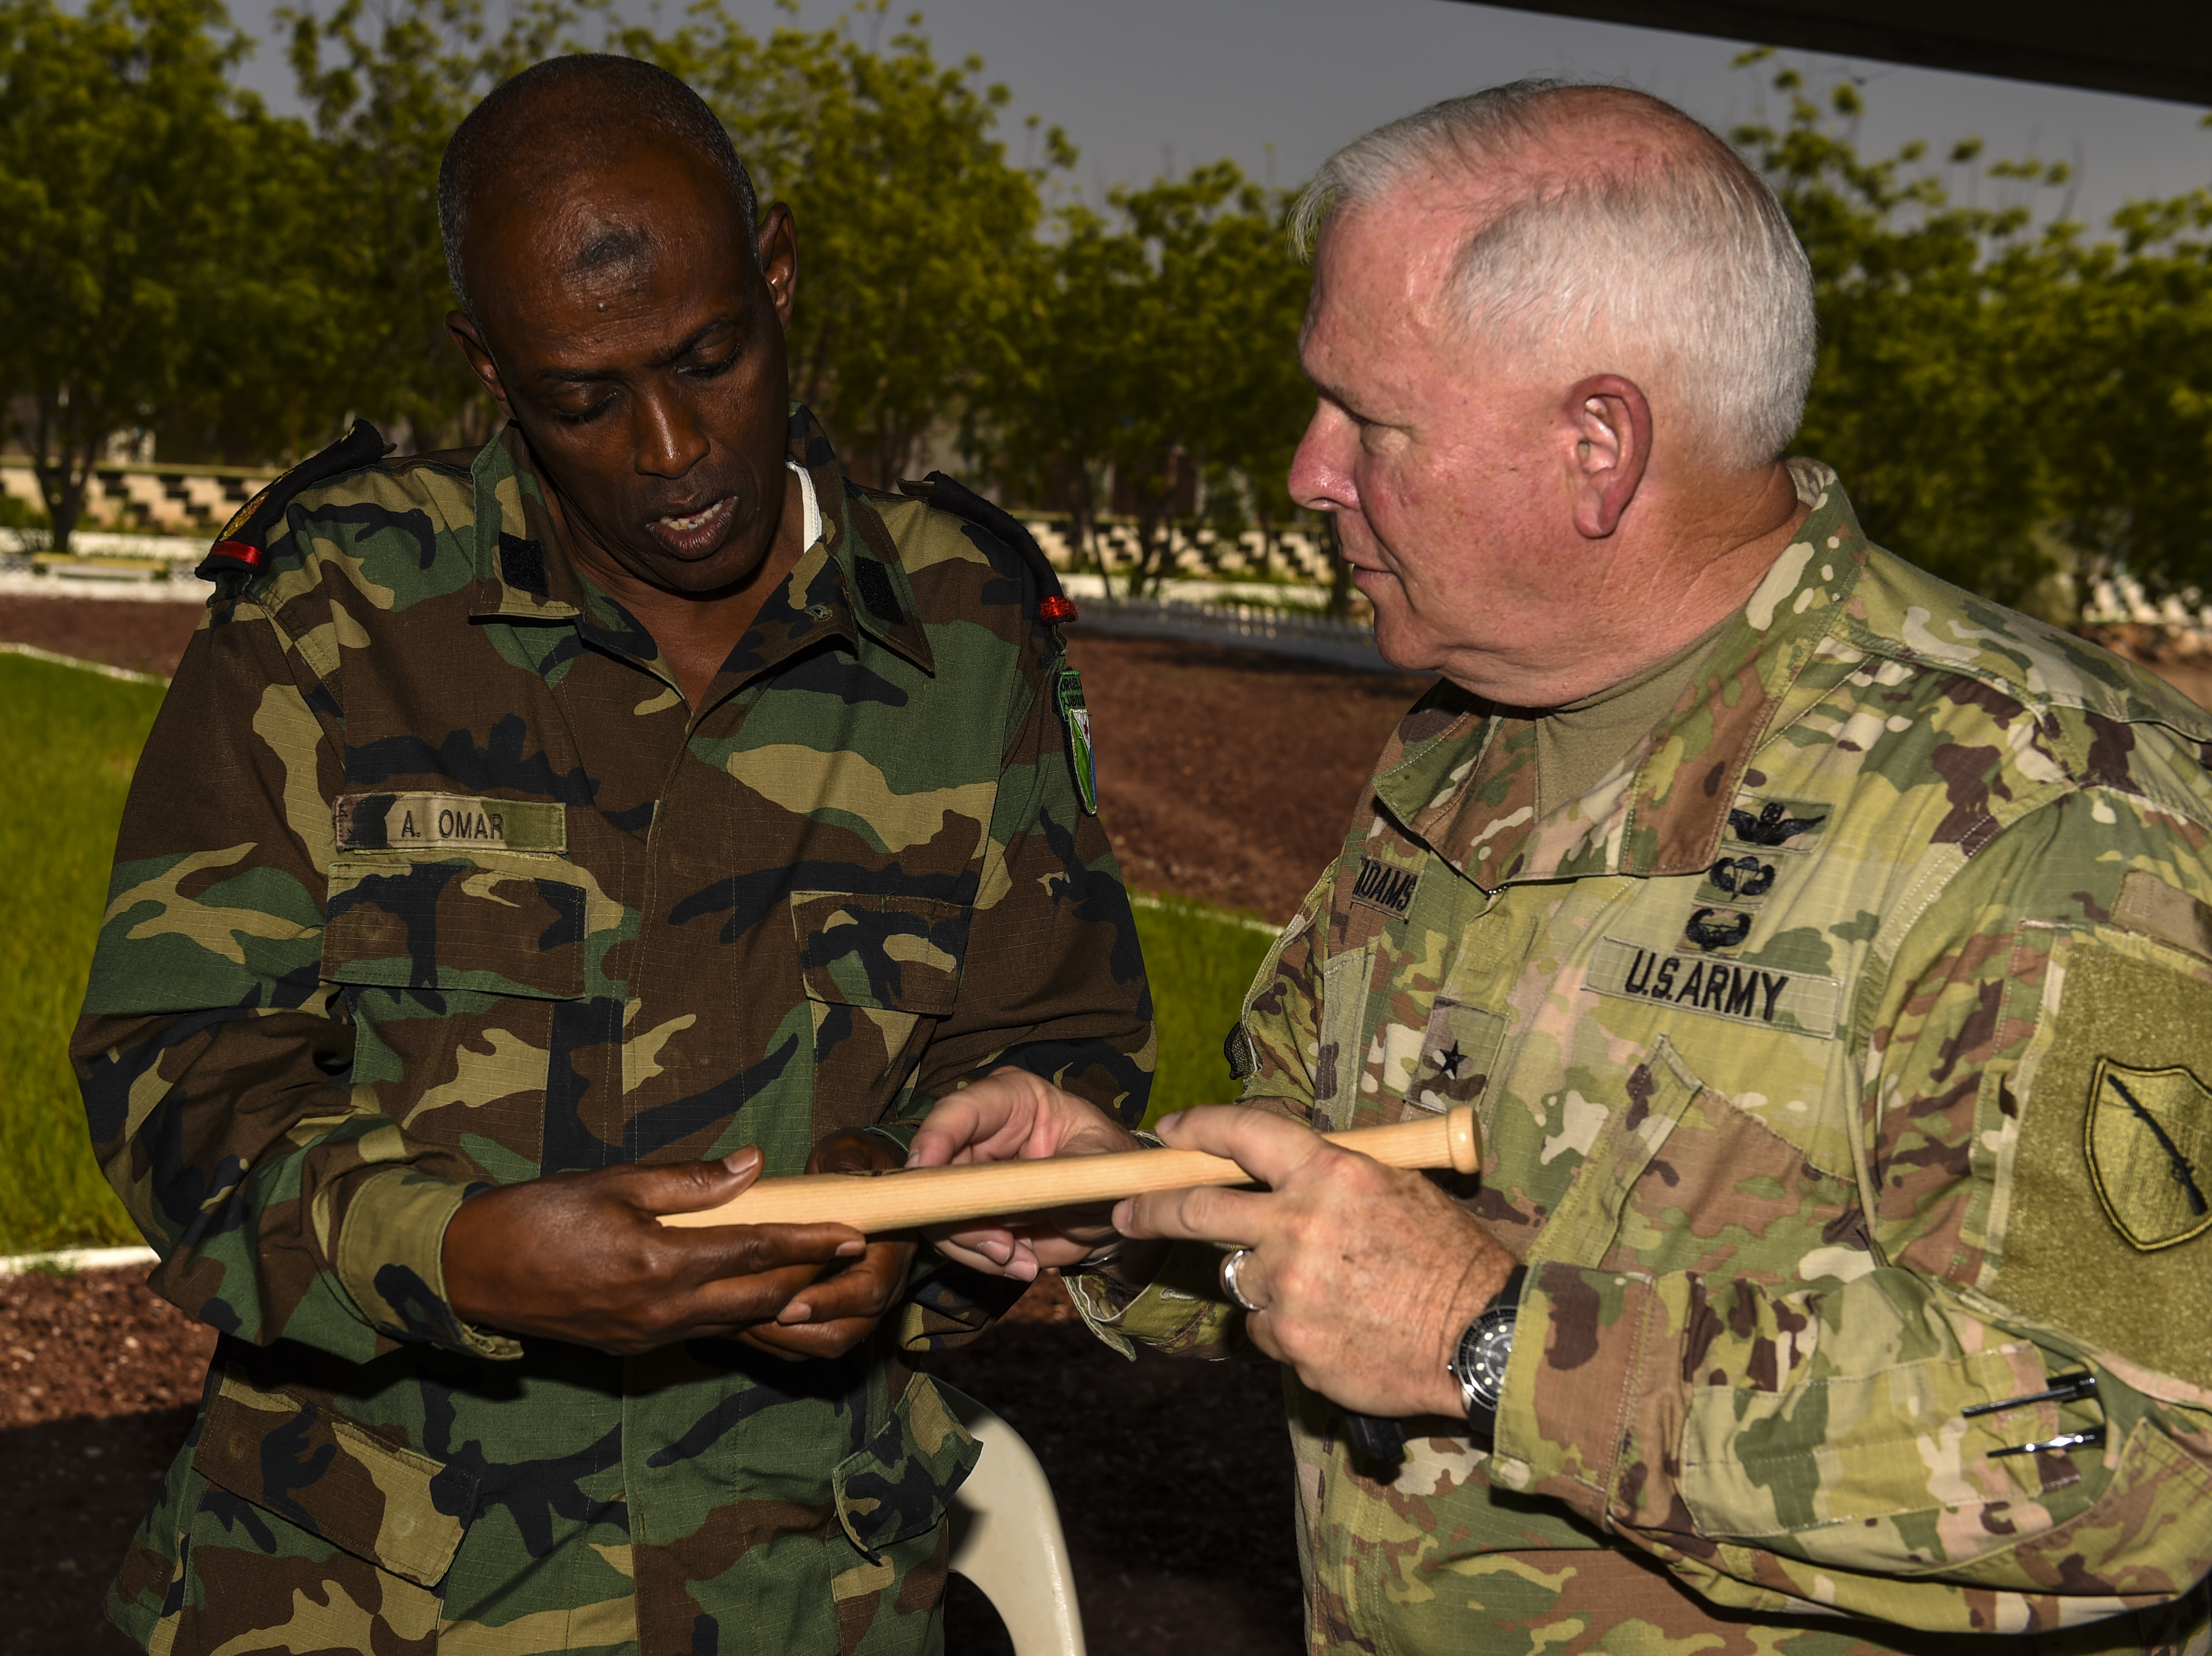 U.S. Army National Guard Brig. Gen. Benjamin Adams III (right), Kentucky National Guard deputy adjutant general, gives a miniature Louisville slugger bat to Djibouti Armed Force (FAD) Lt. Col. A. Omar during a State Partnership Program (SPP) visit to the FAD military training center at Holhol, Djibouti, Nov. 14, 2017. The SPP is a joint U.S. Department of Defense program that matches a state's National Guard with a nation to promote enduring, mutually beneficial security relationships. (U.S. Air Force photo by Staff Sgt. Timothy Moore)